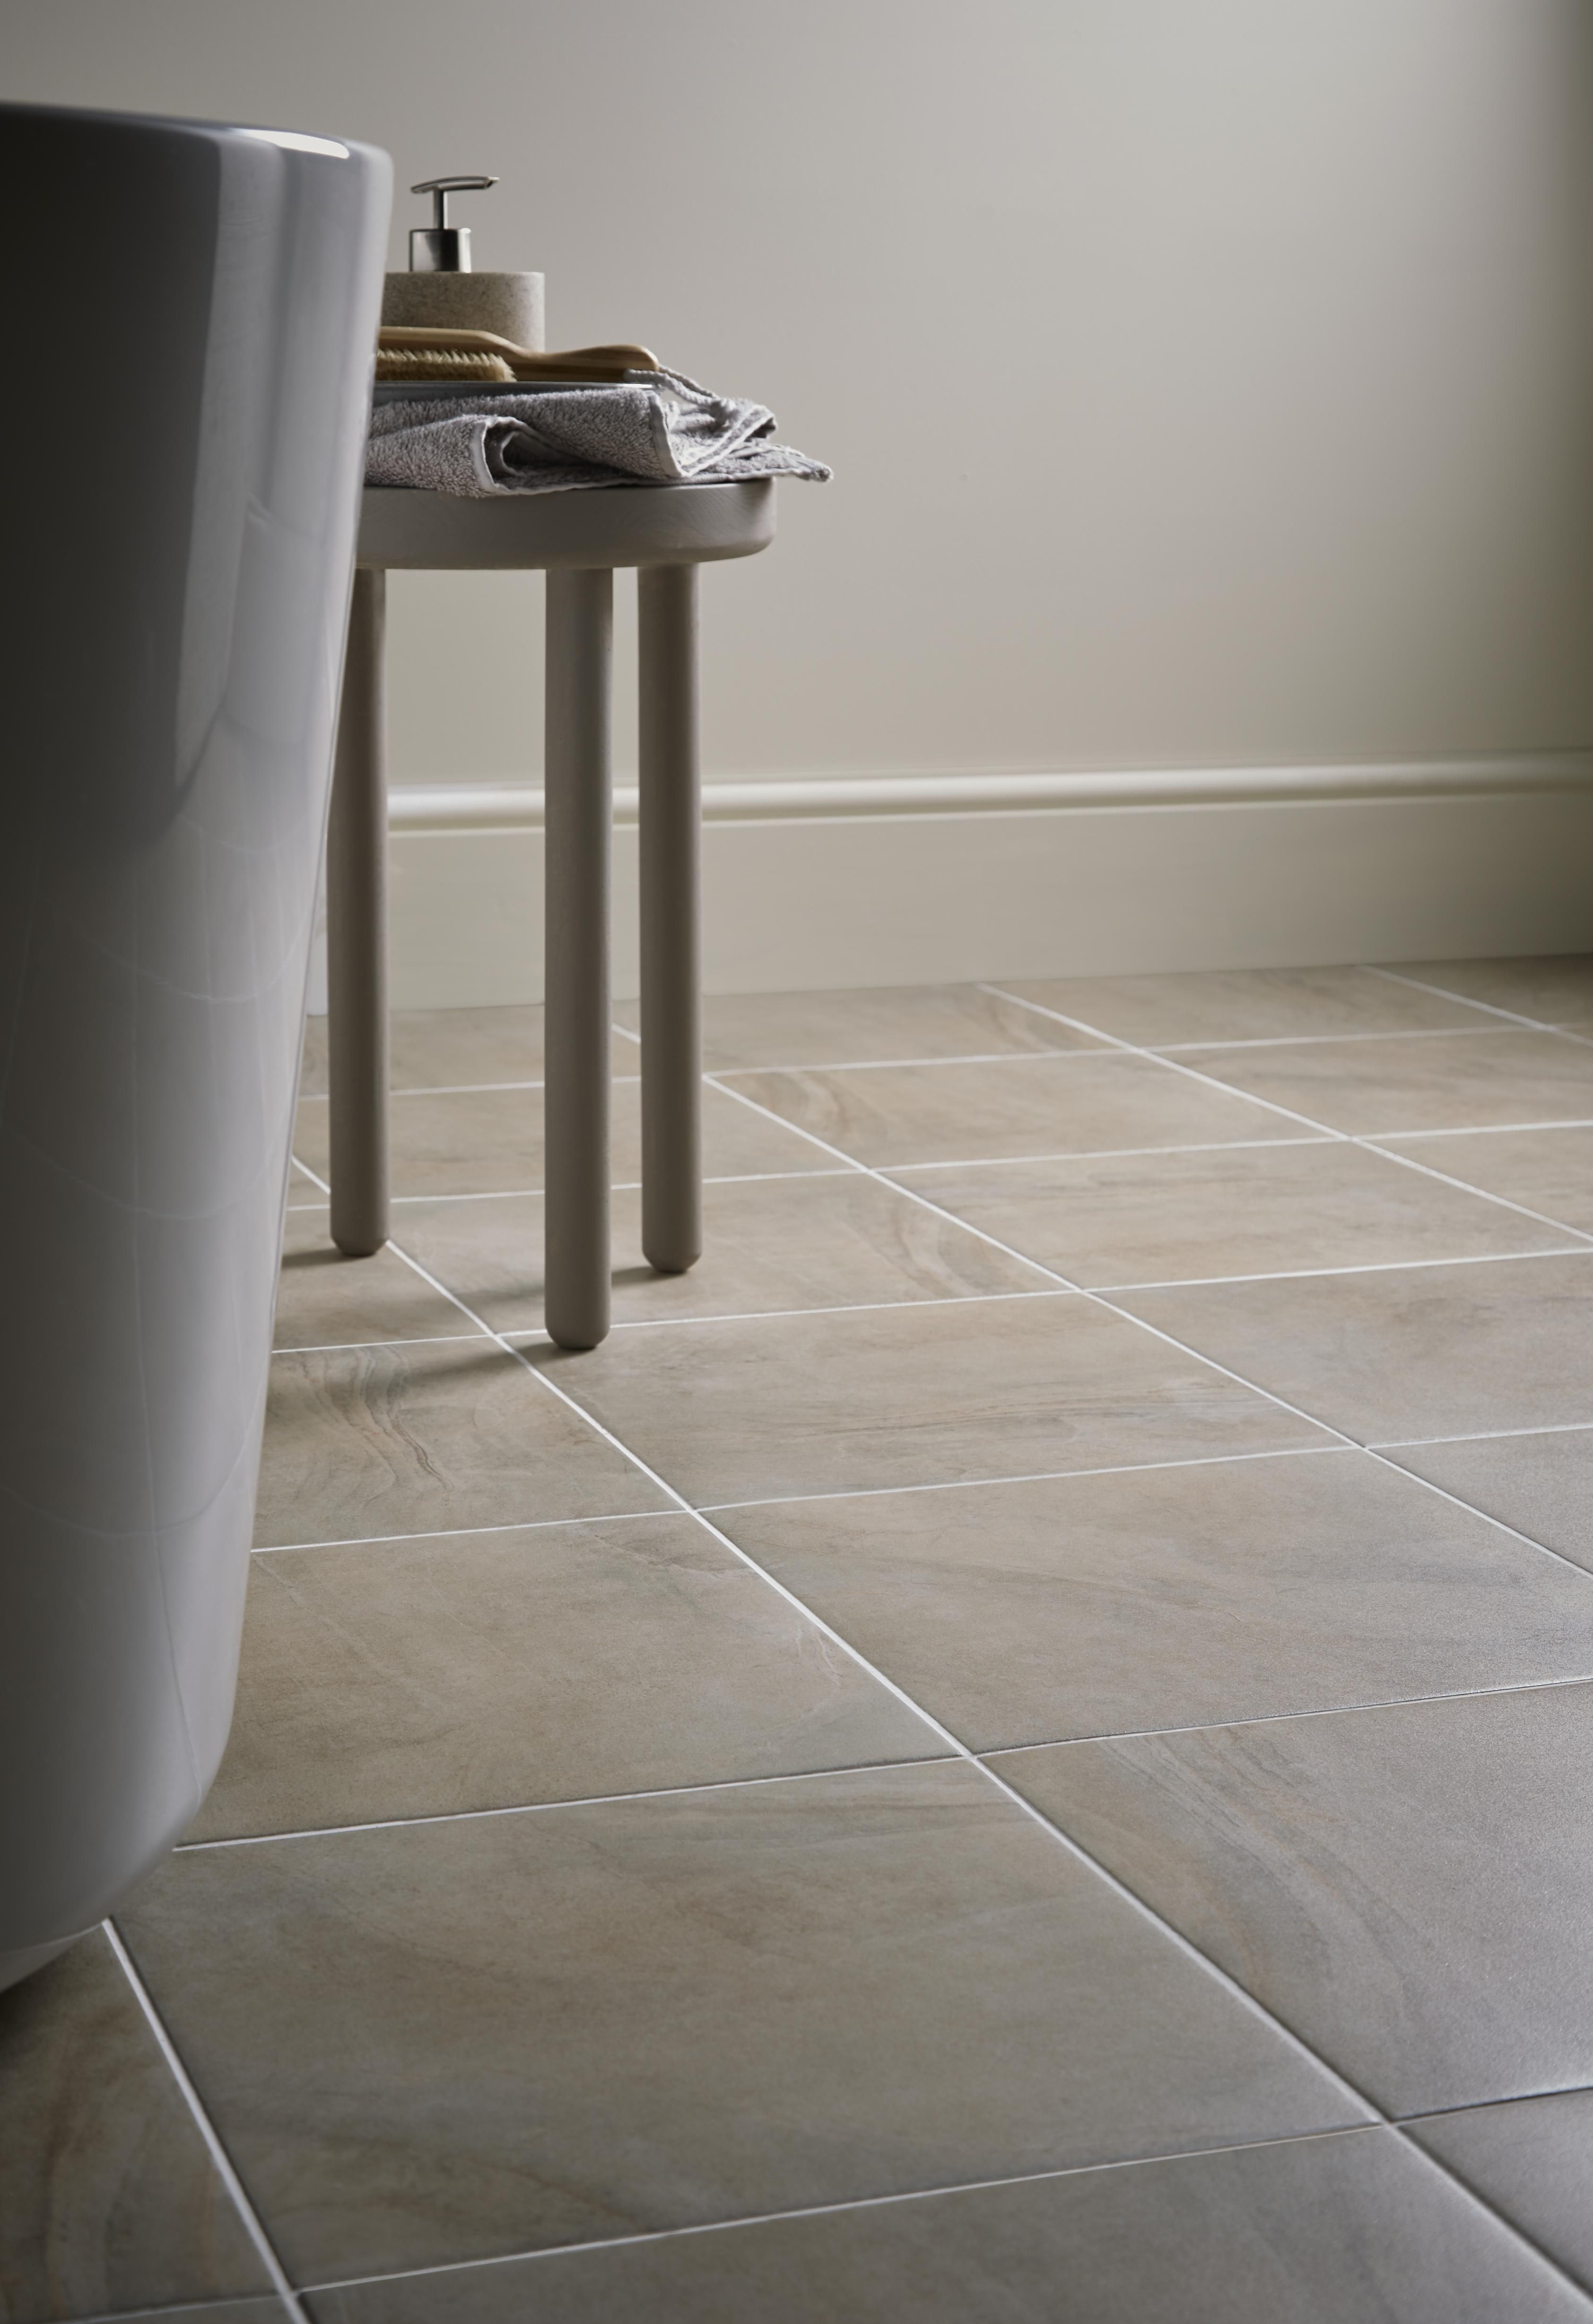 Mimicking Sedimentary Rock Formations And Beach Style Patterns The Granada Is A Natural Looking Tile That S Perfect Fro Bathrooms